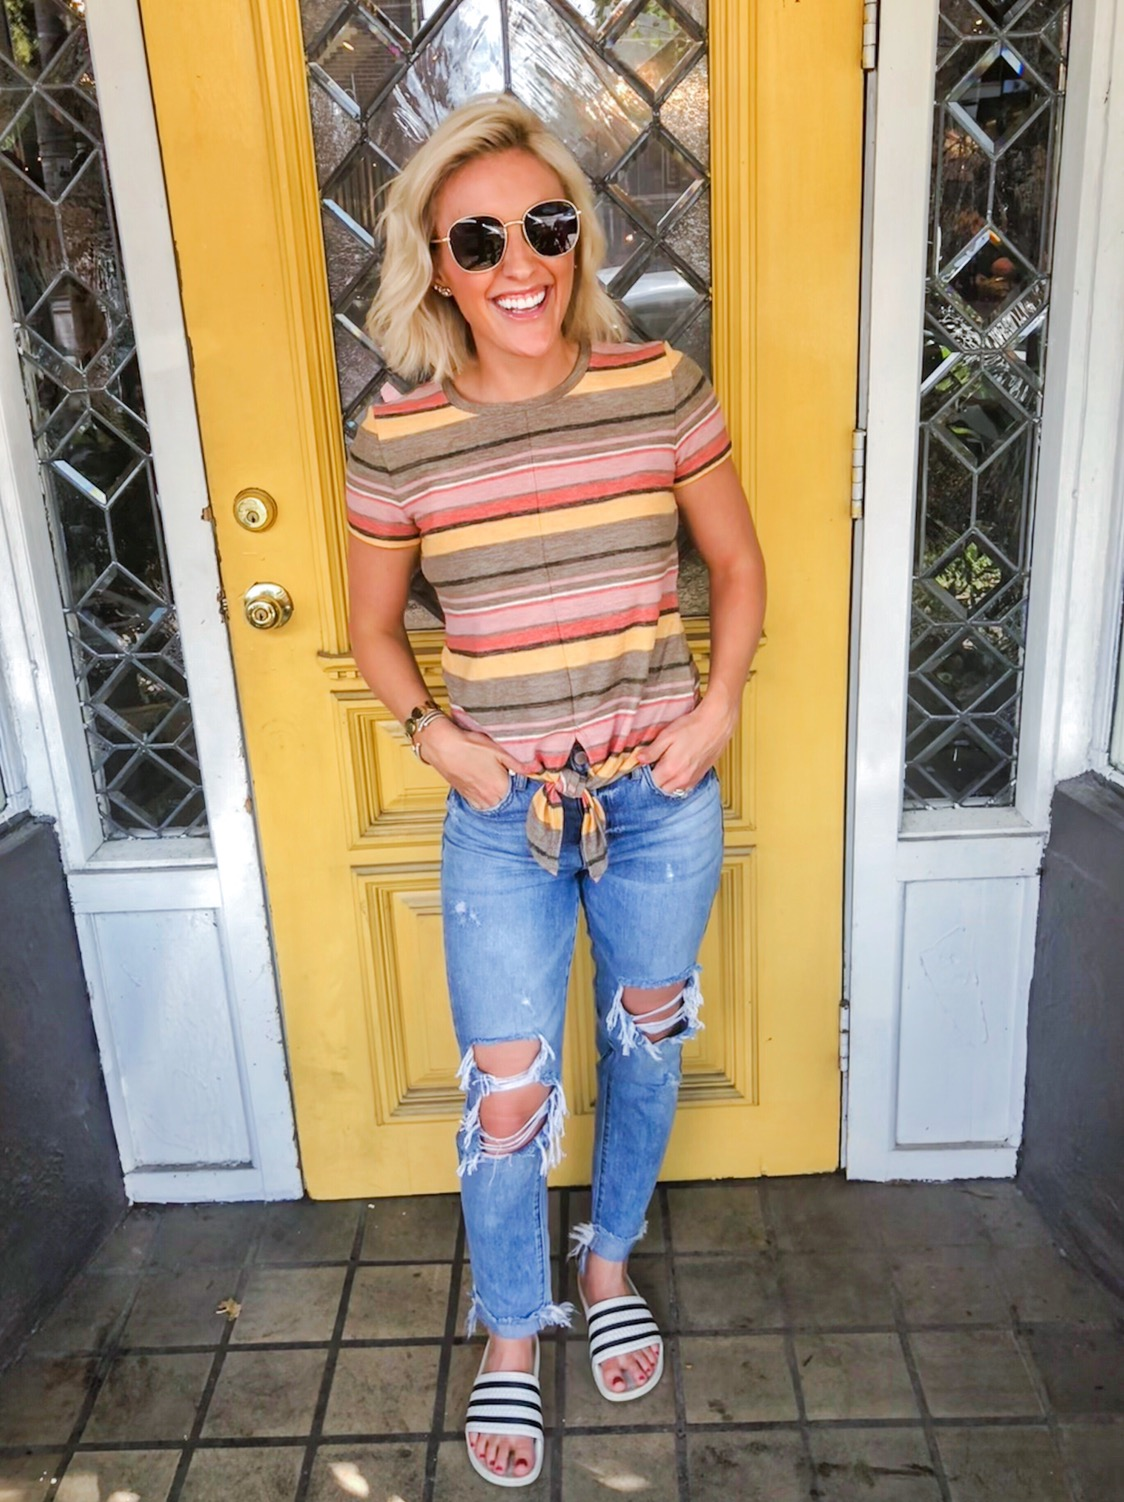 DEETS:  Sunnies  |  Tee  |  Jeans  |  Shoes